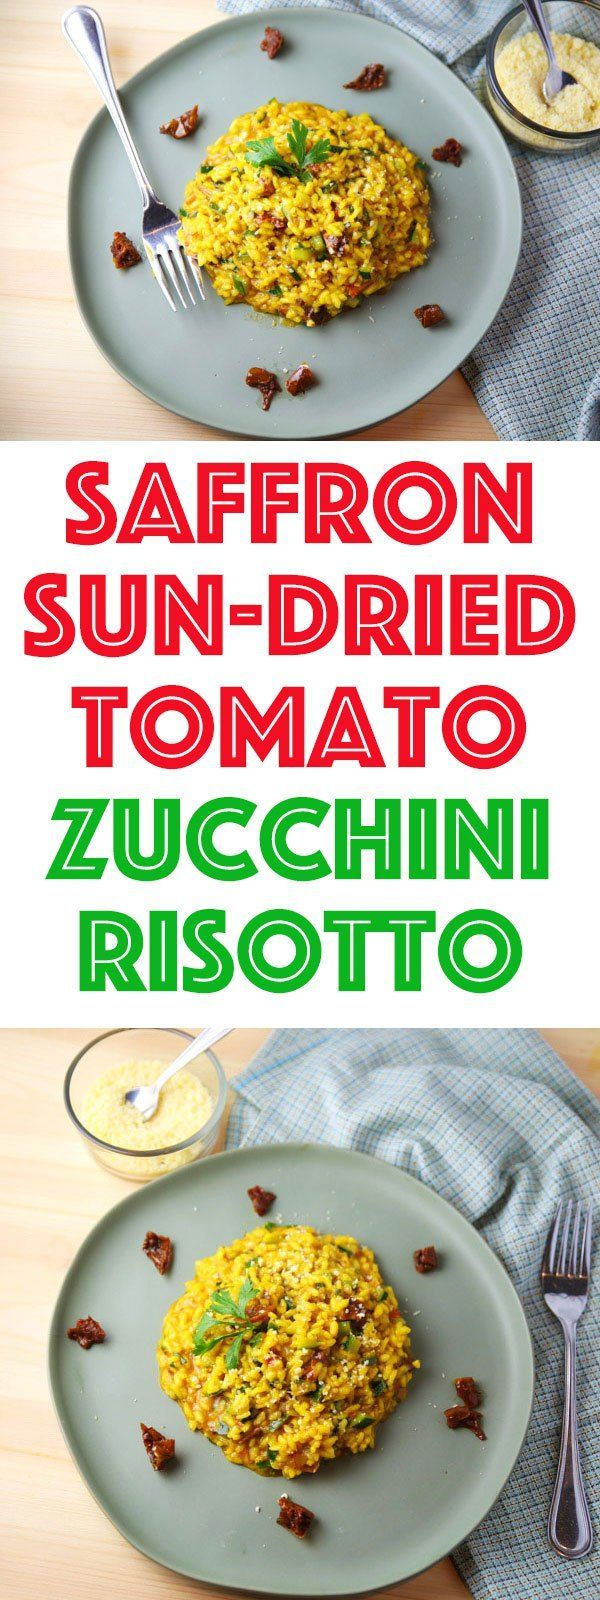 This Saffron Sun-Dried Tomato Zucchini Risotto is so creamy and delicious, this will be your new favorite meal!